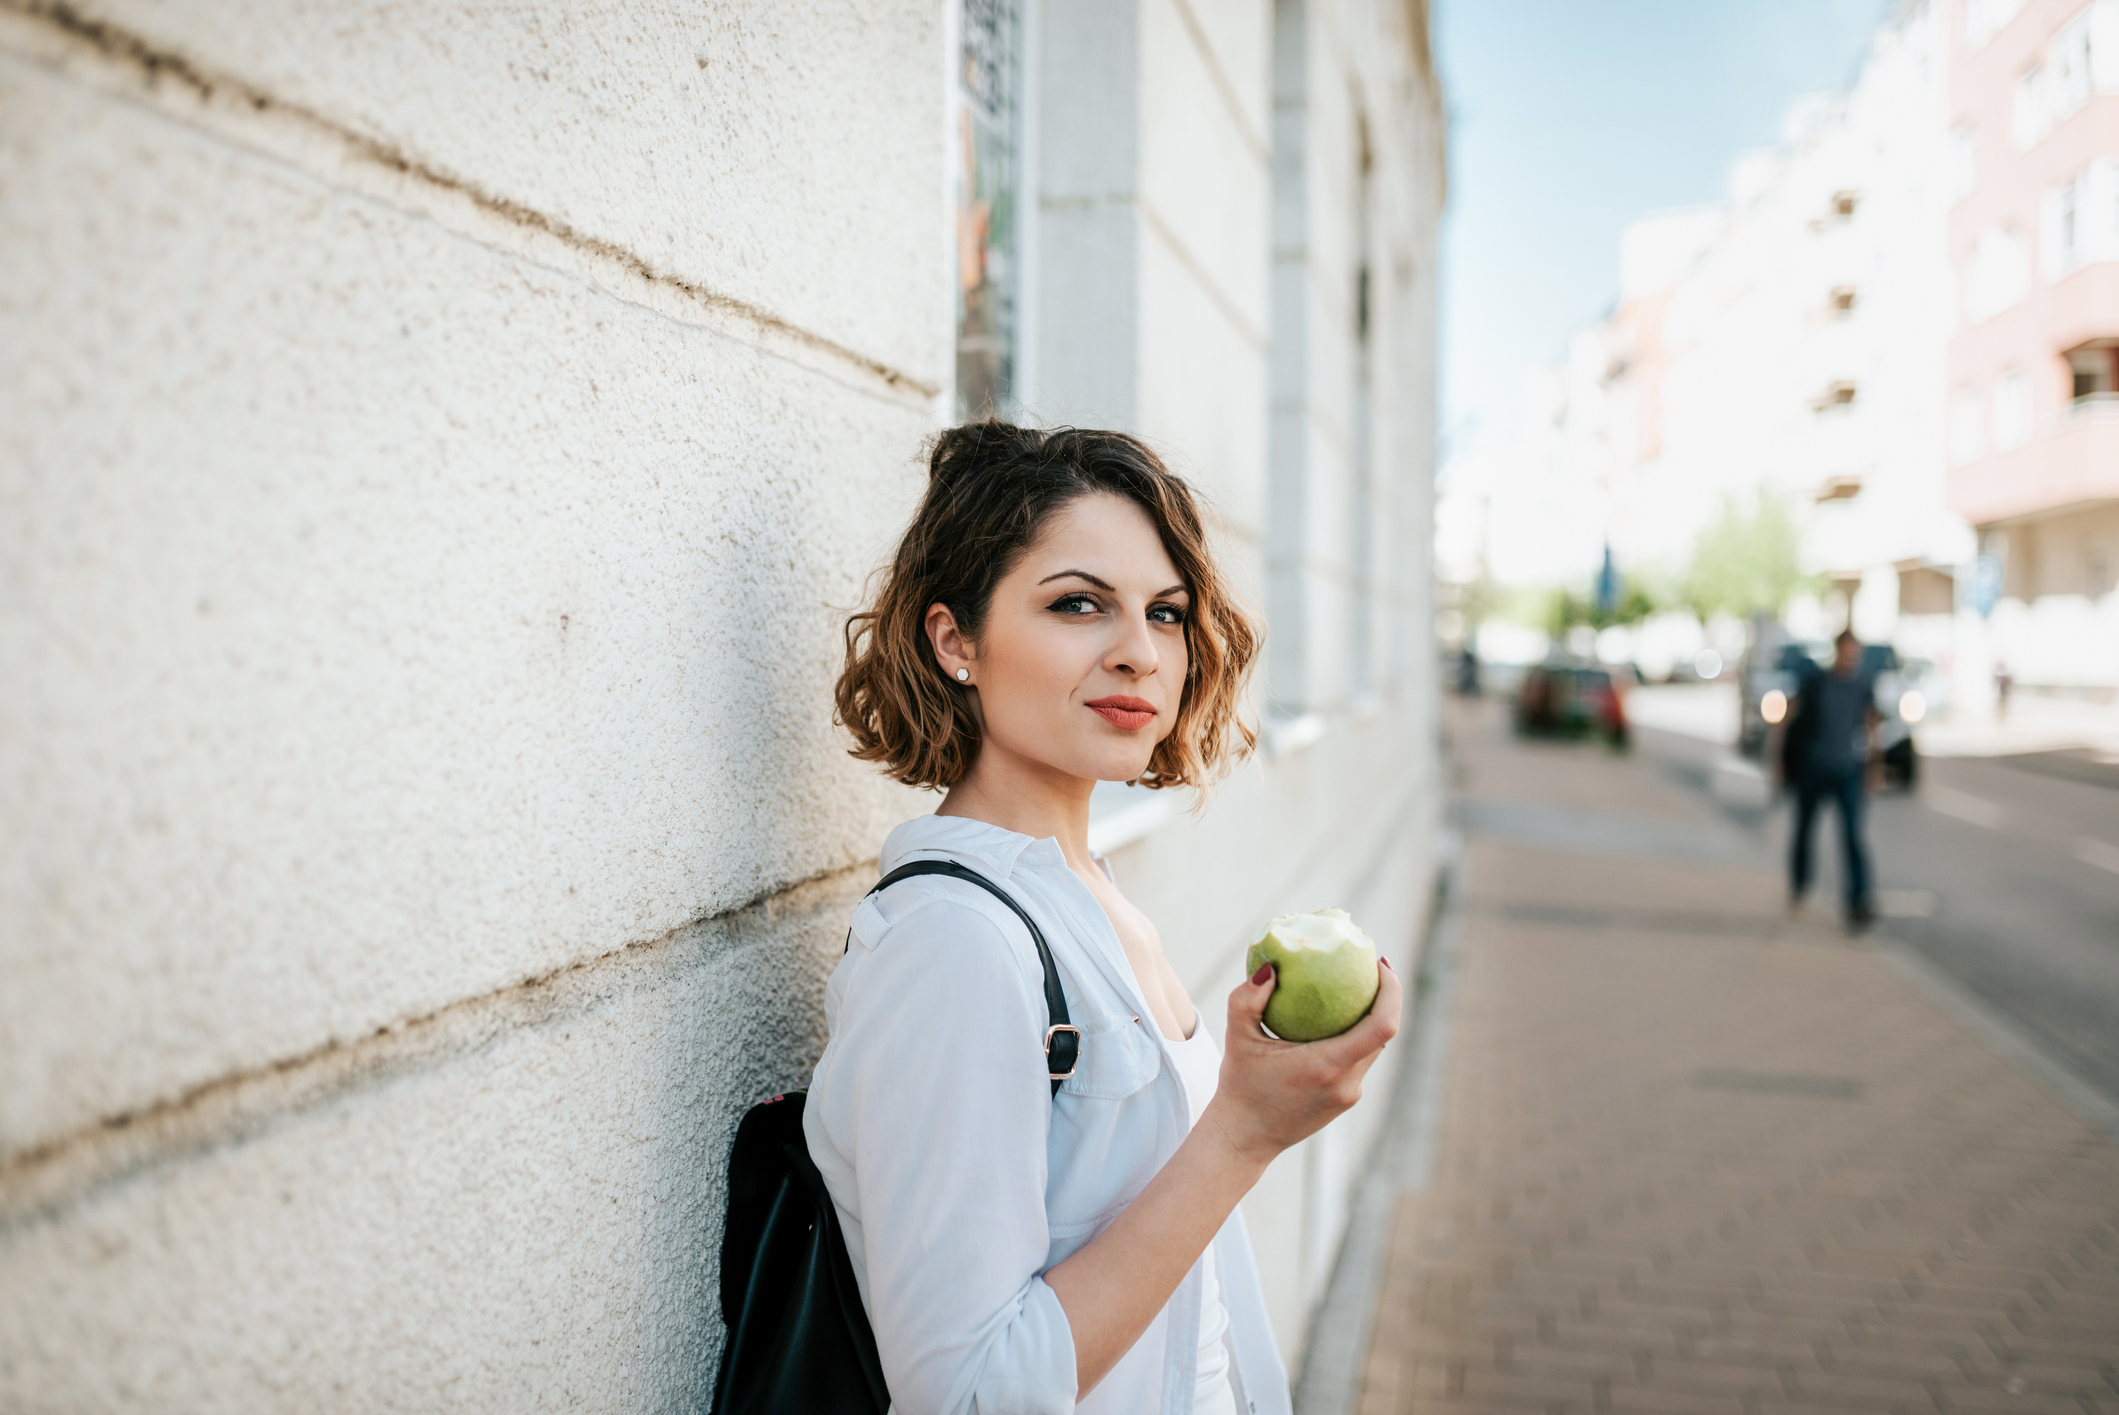 Gorgeous looking woman eating apple on street.